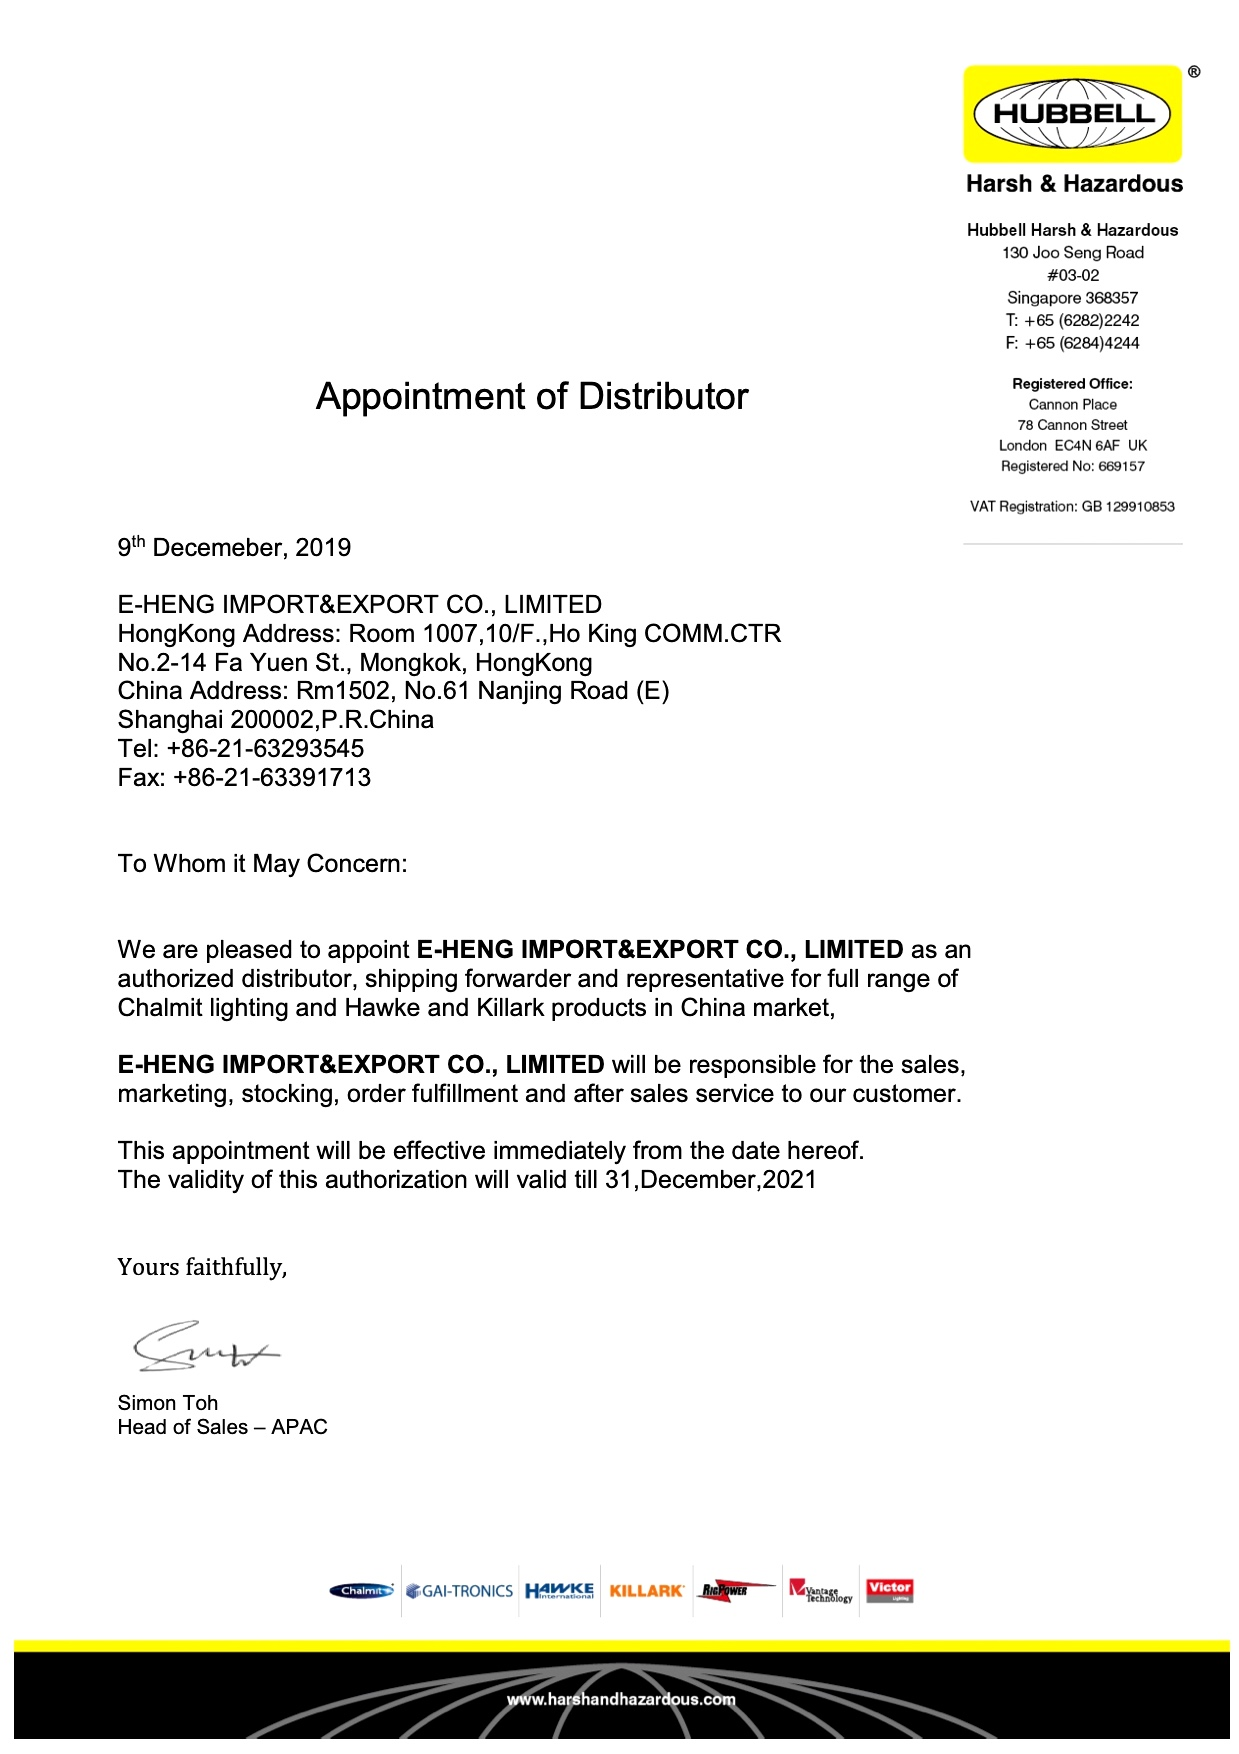 HUBBELL Authorization Letter